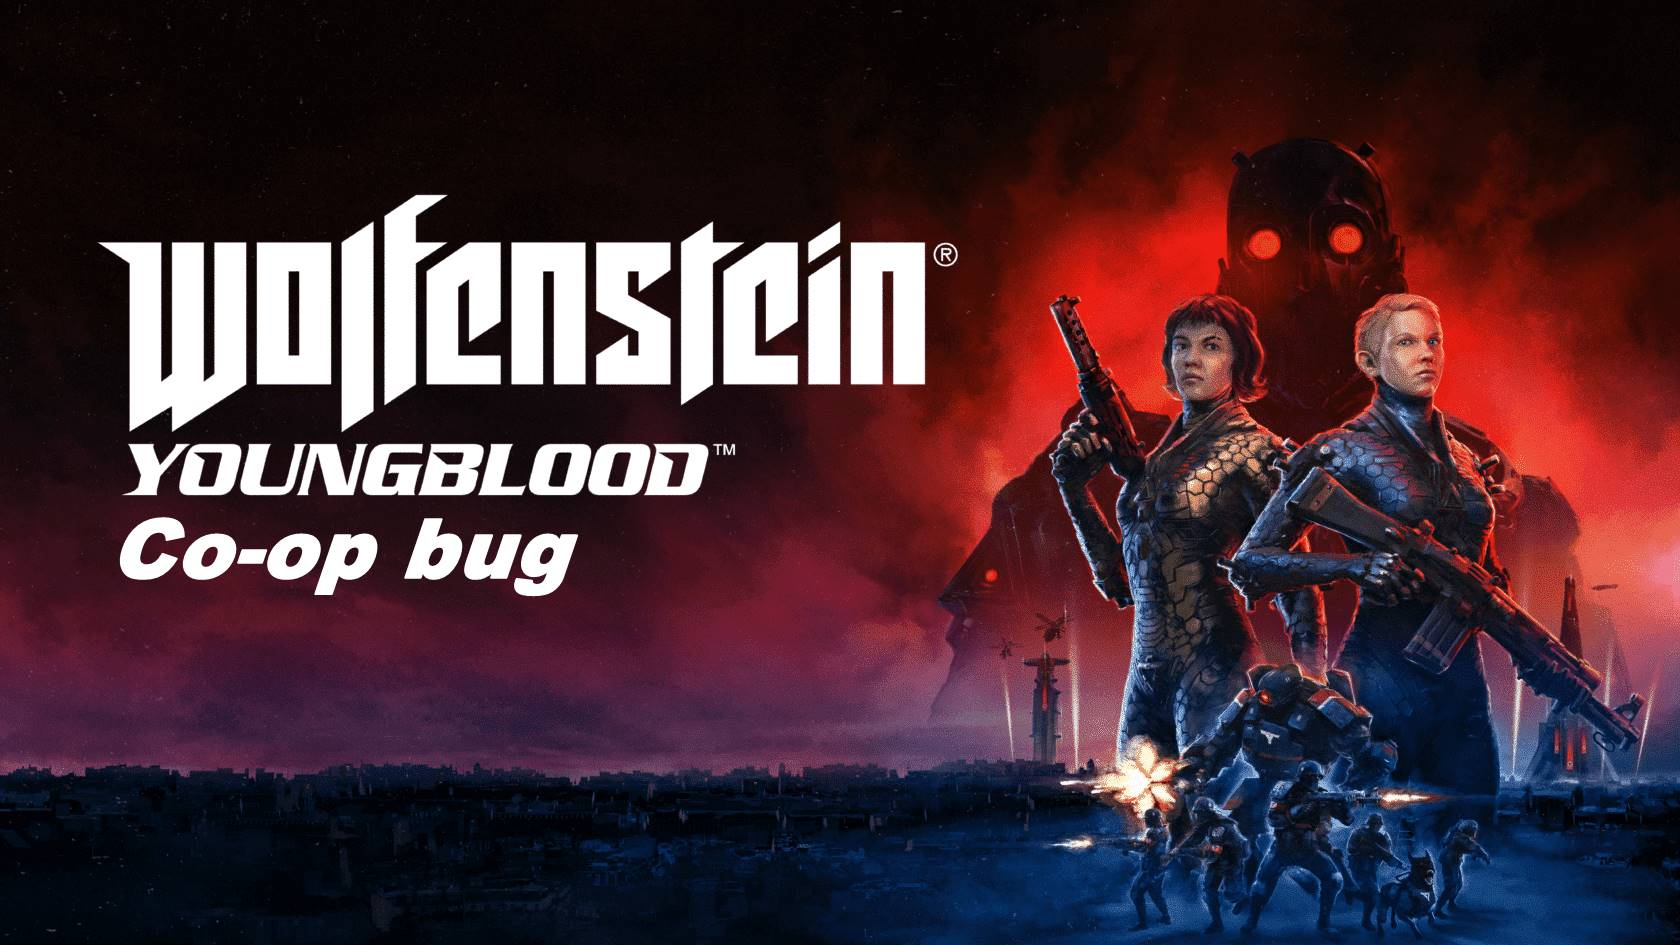 Wolfenstein Youngblood co-op bug - Unable to invite friend - Is